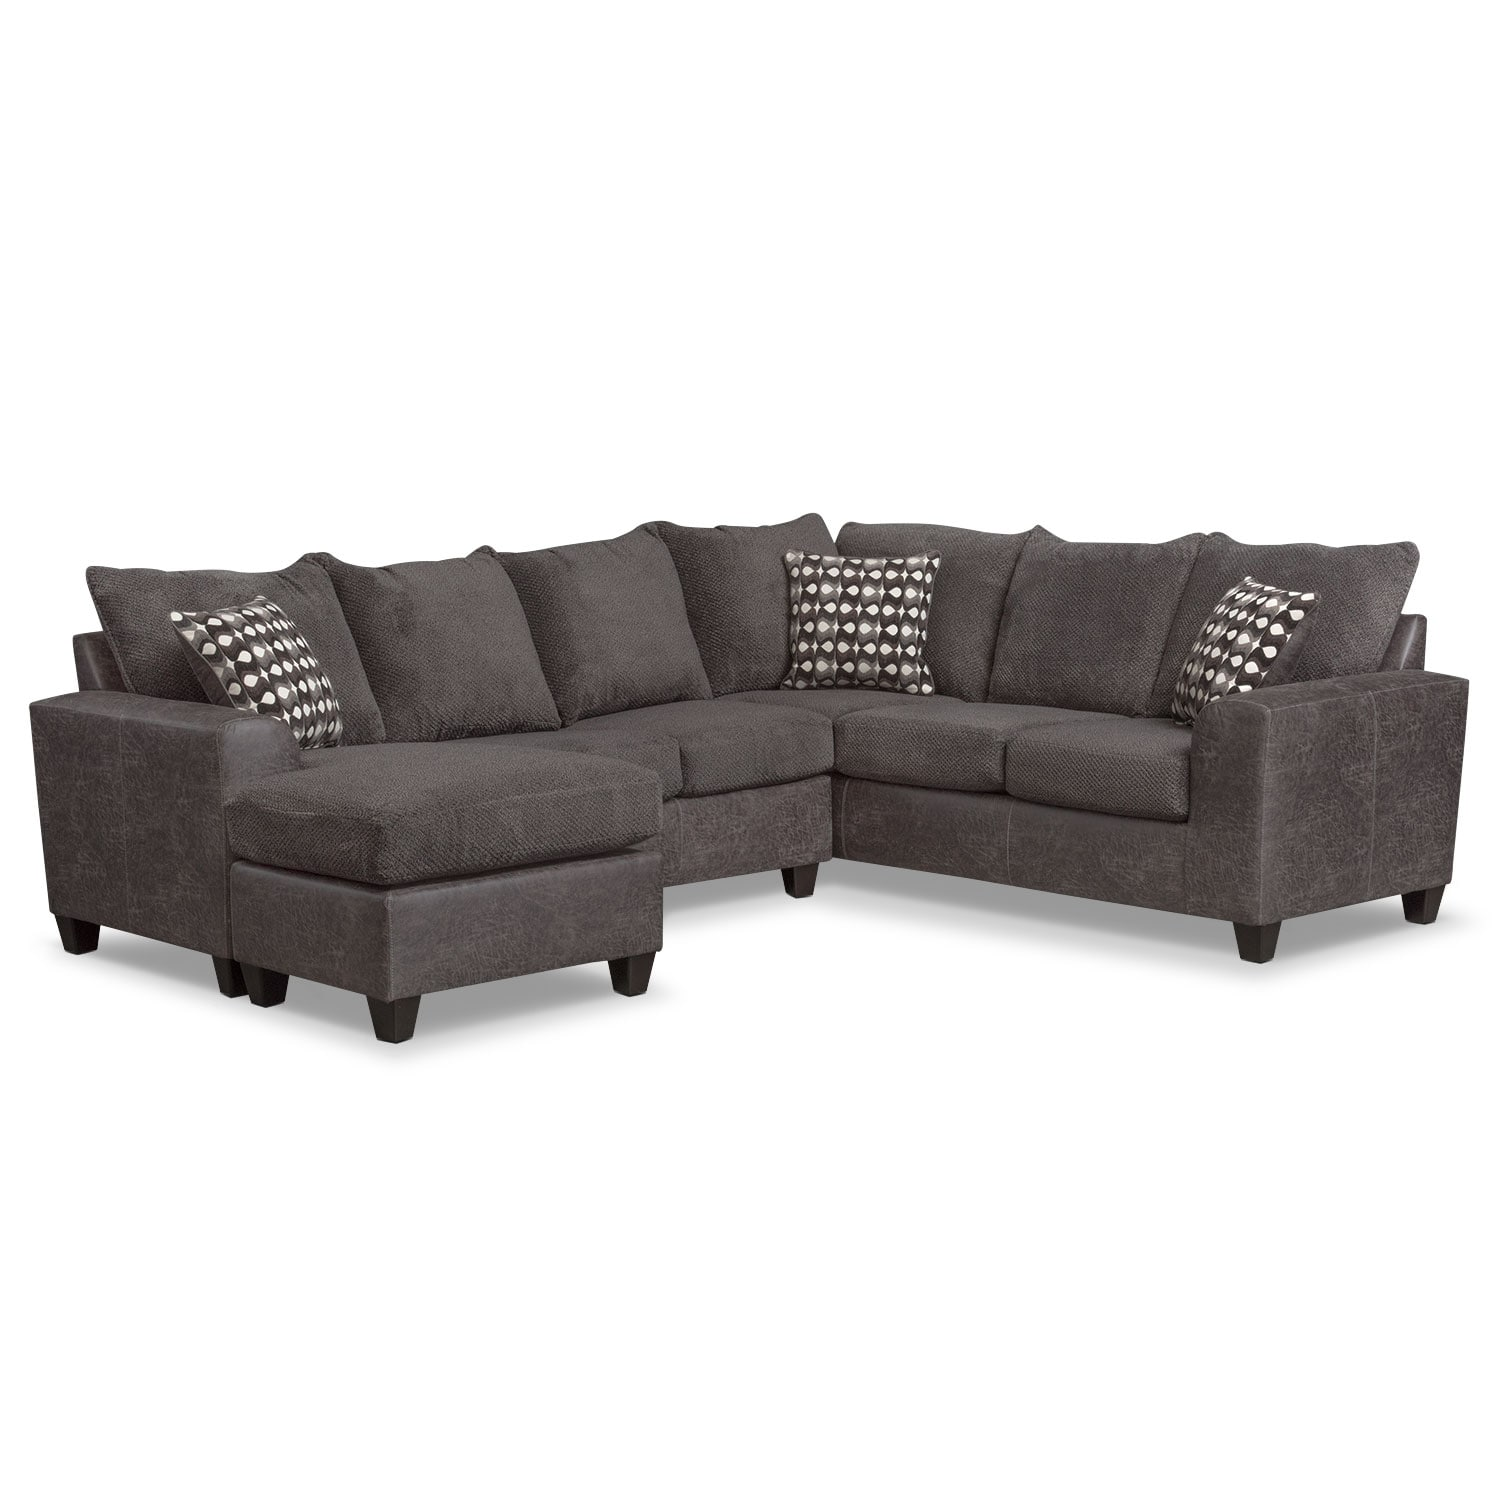 Brando 3 Piece Sectional With Modular Chaise ...